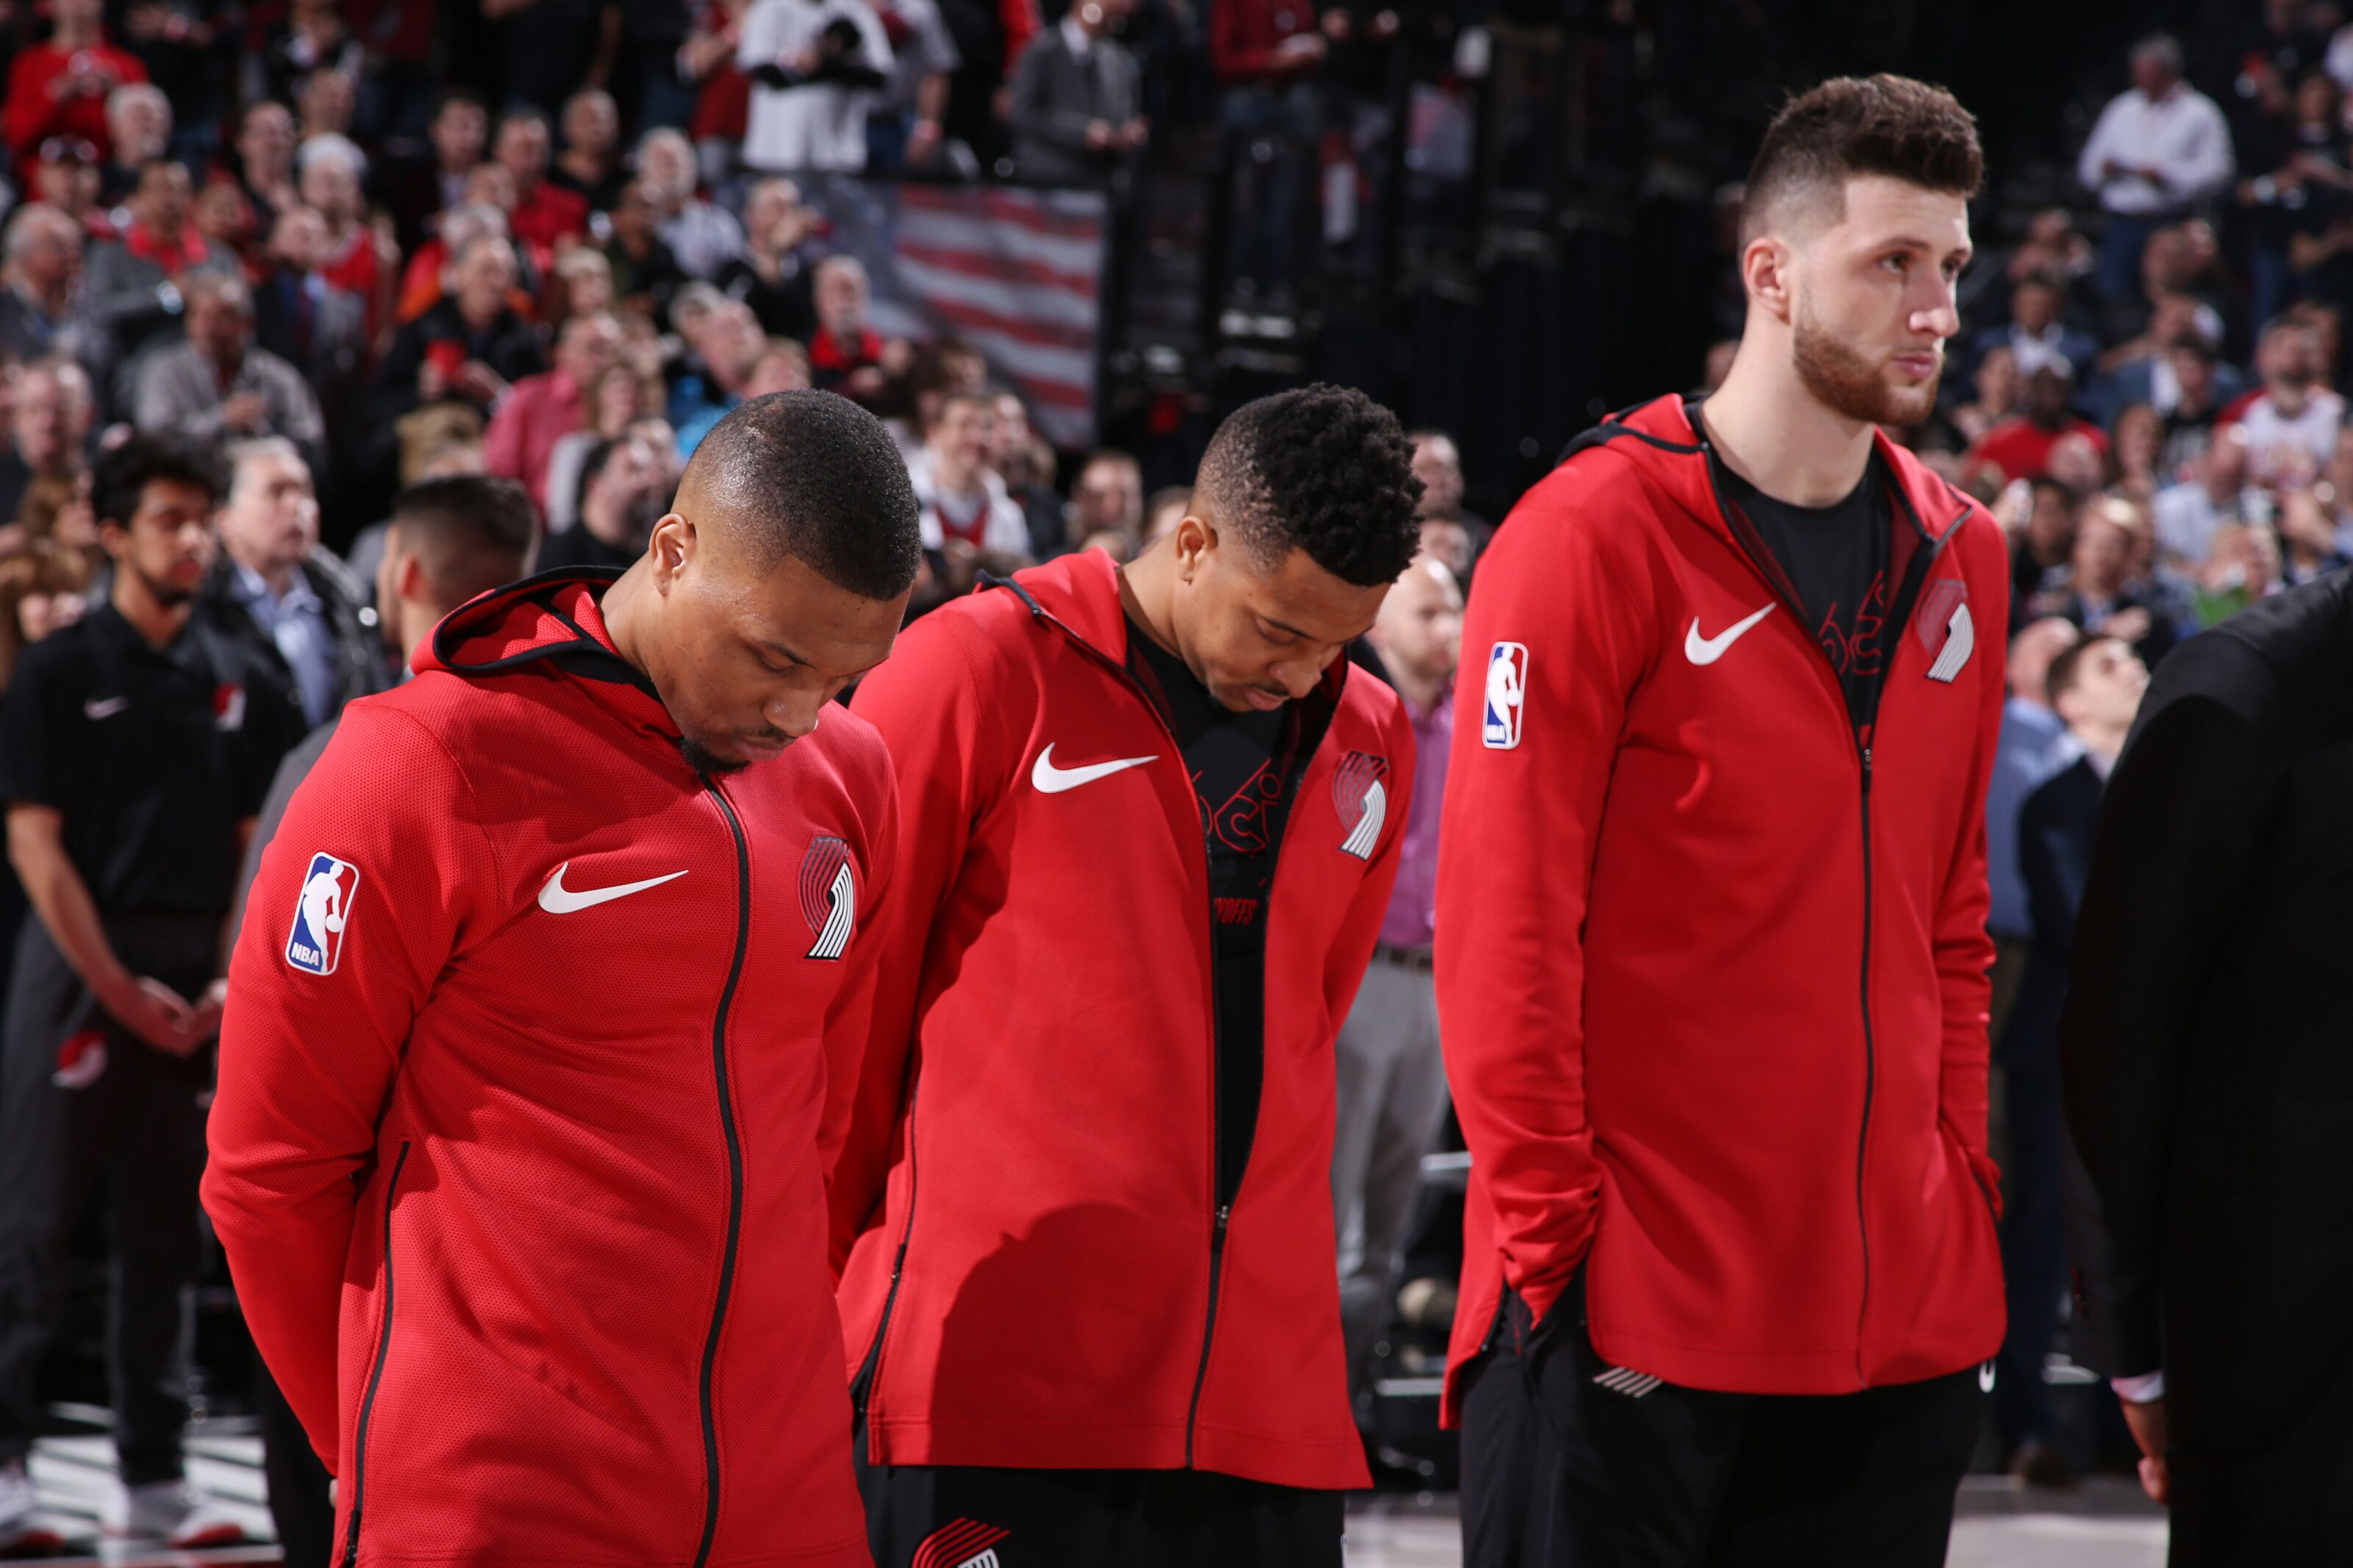 946378318-new-orleans-pelicans-v-portland-trail-blazers-game-one.jpg